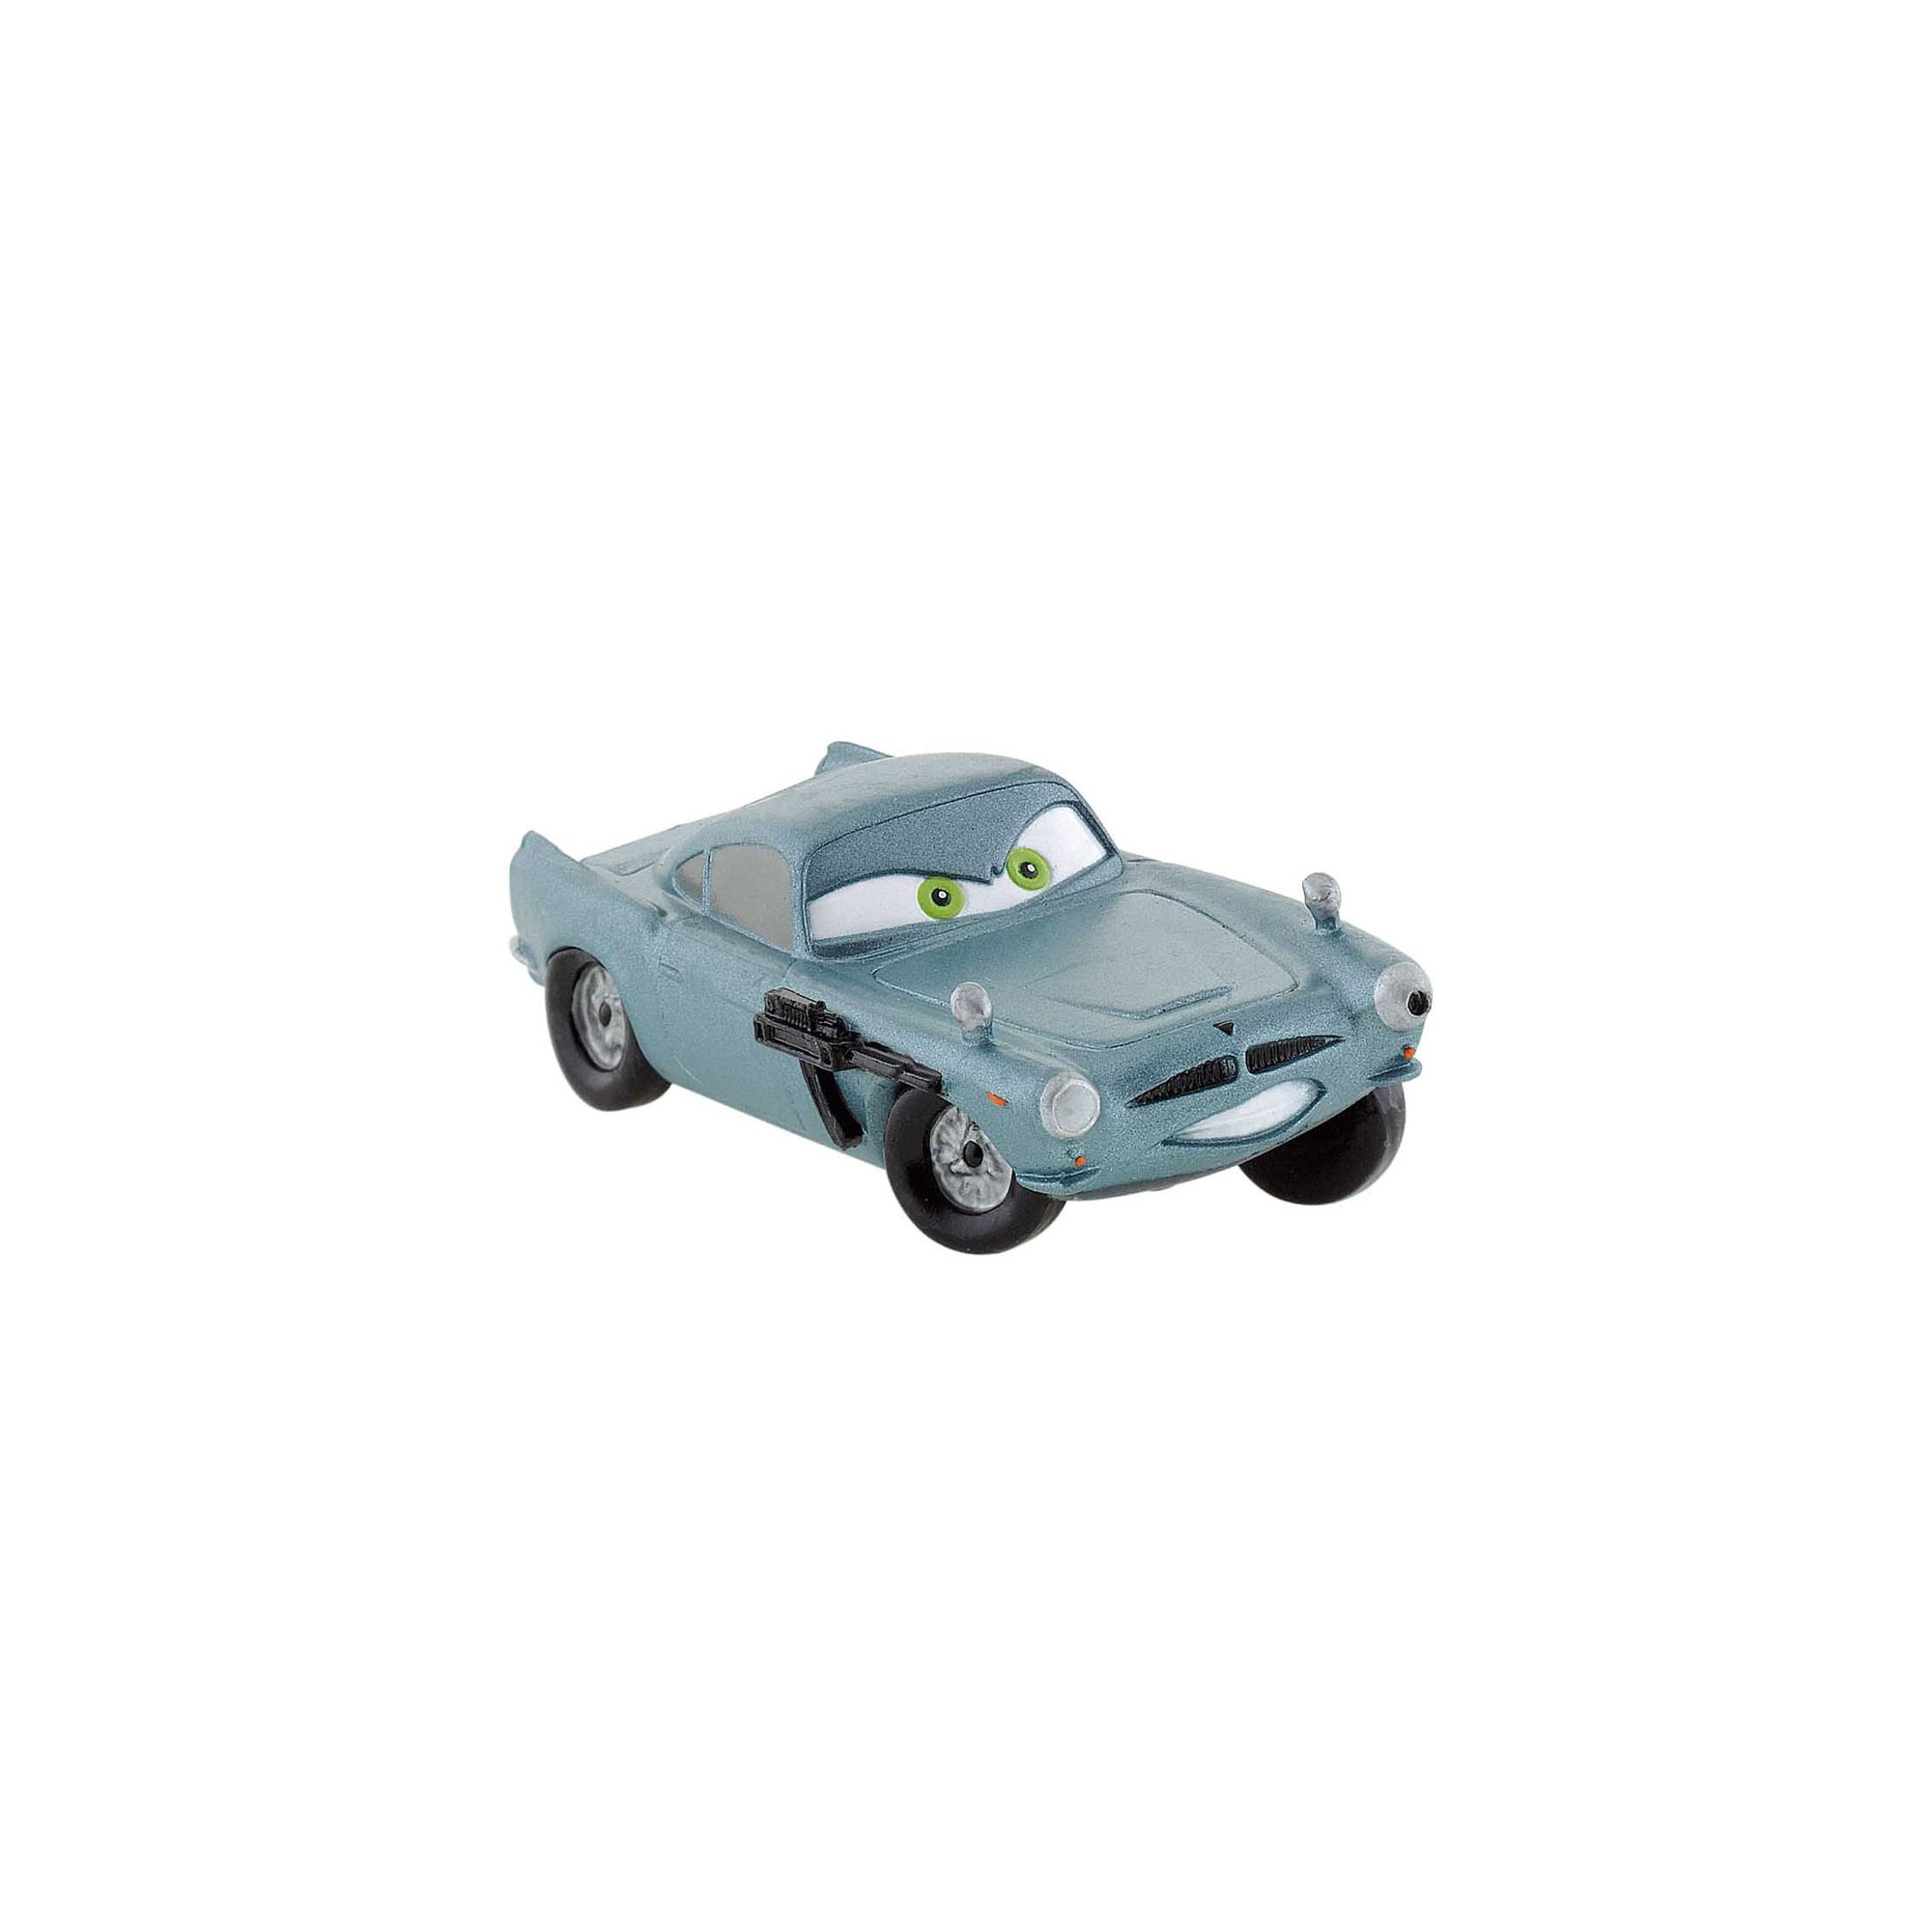 Cars 2 Spy Attack Finn Mcmissile: Myshop